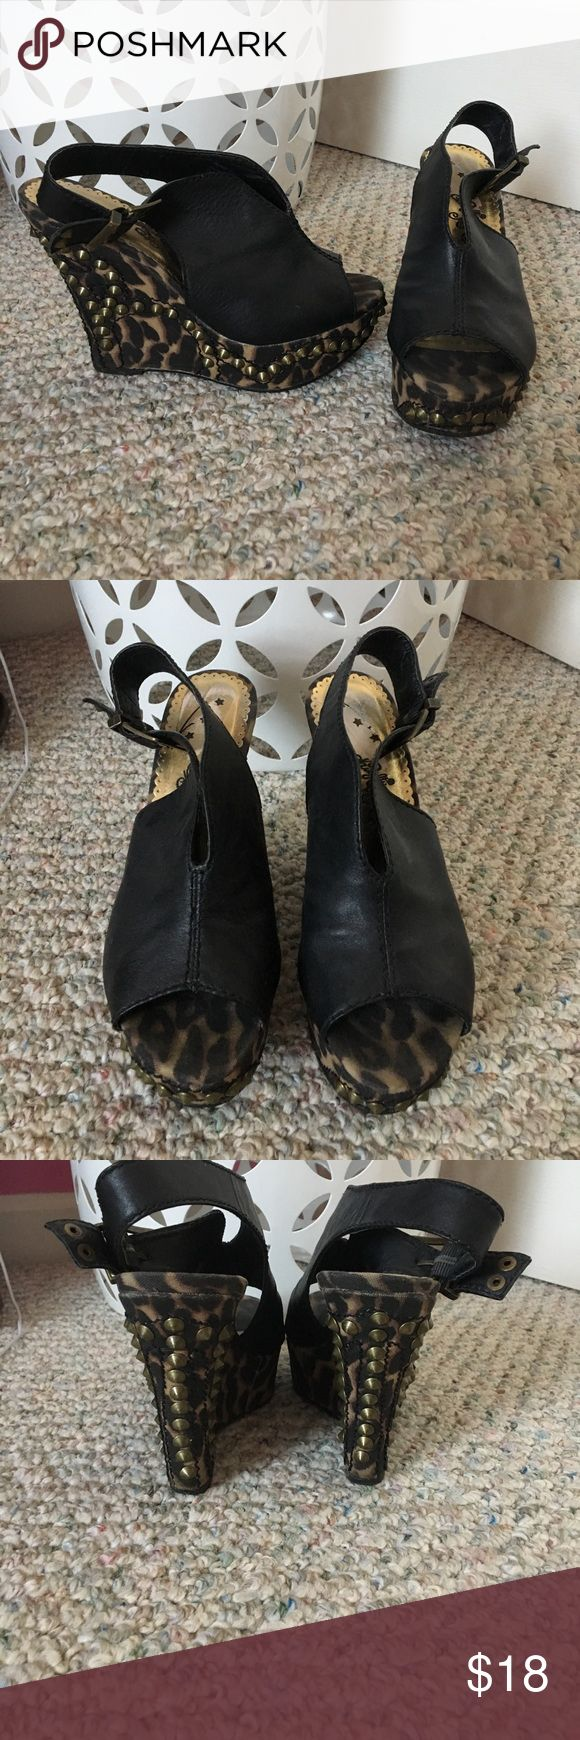 Black & leopard print wedges with studs Wedges in black with leopard print & studs ☮️ on the heel.... in great condition and very comfortable naughty monkey Shoes Sandals